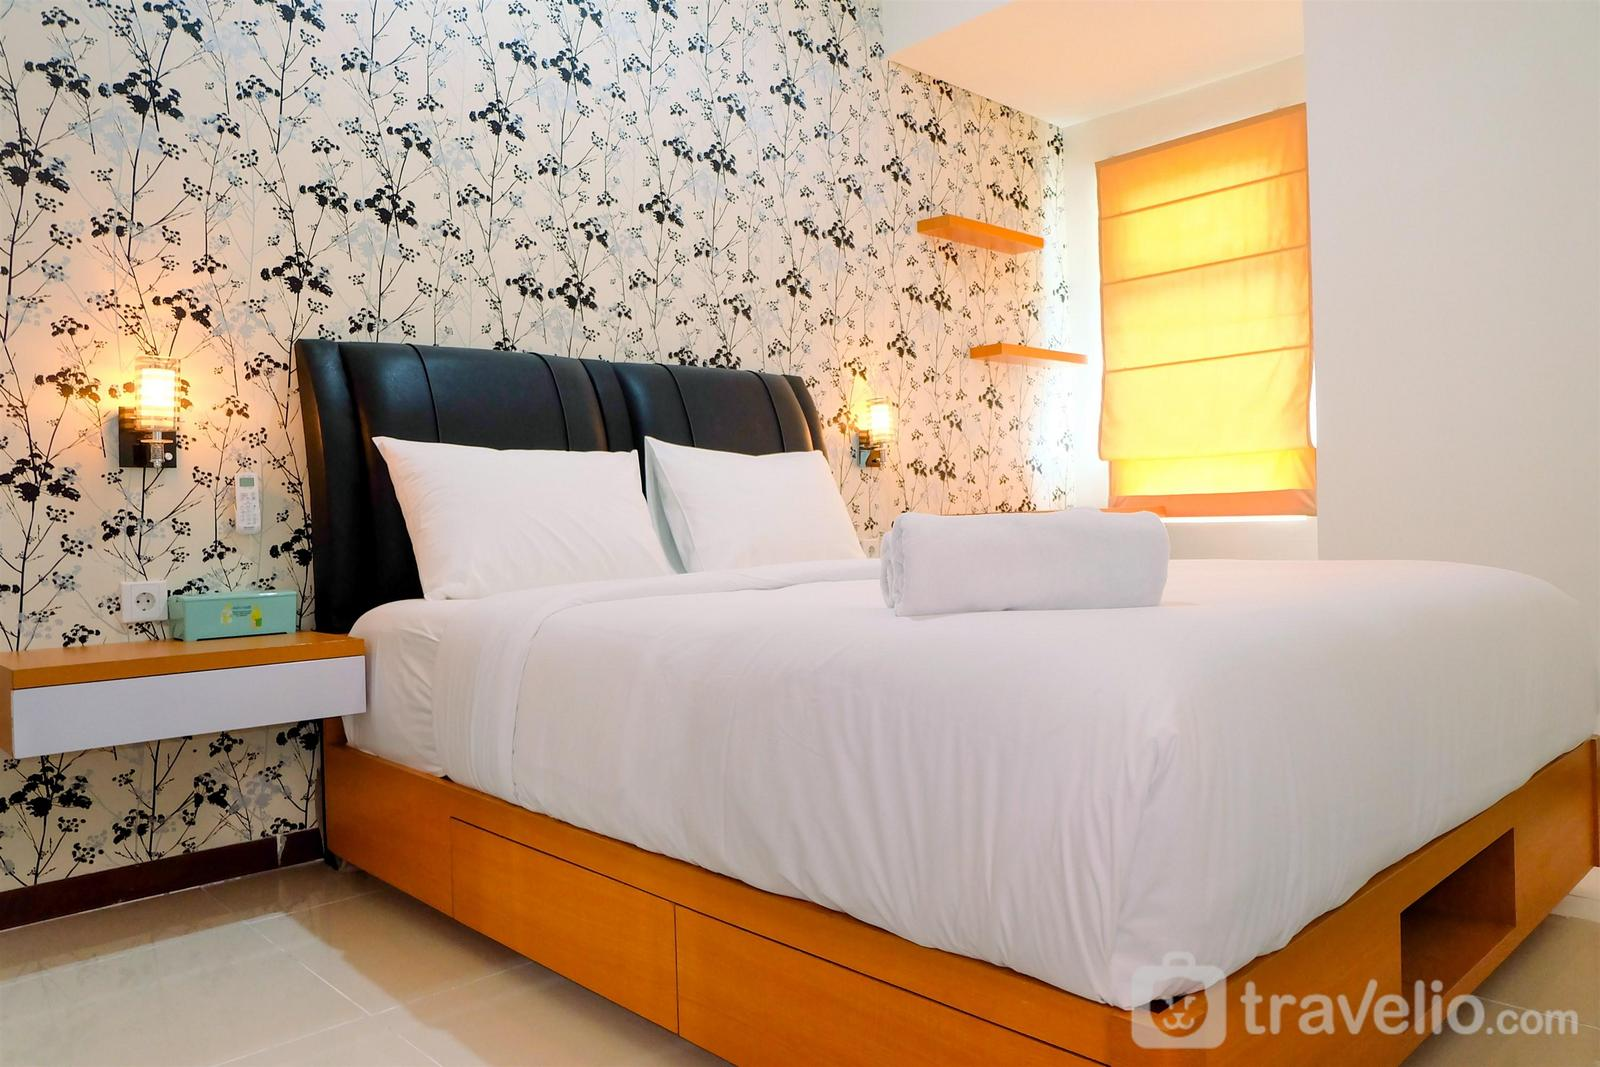 Green Bay Pluit - 1BR Sea View Condominium at Green Bay Pluit Apartment By Travelio